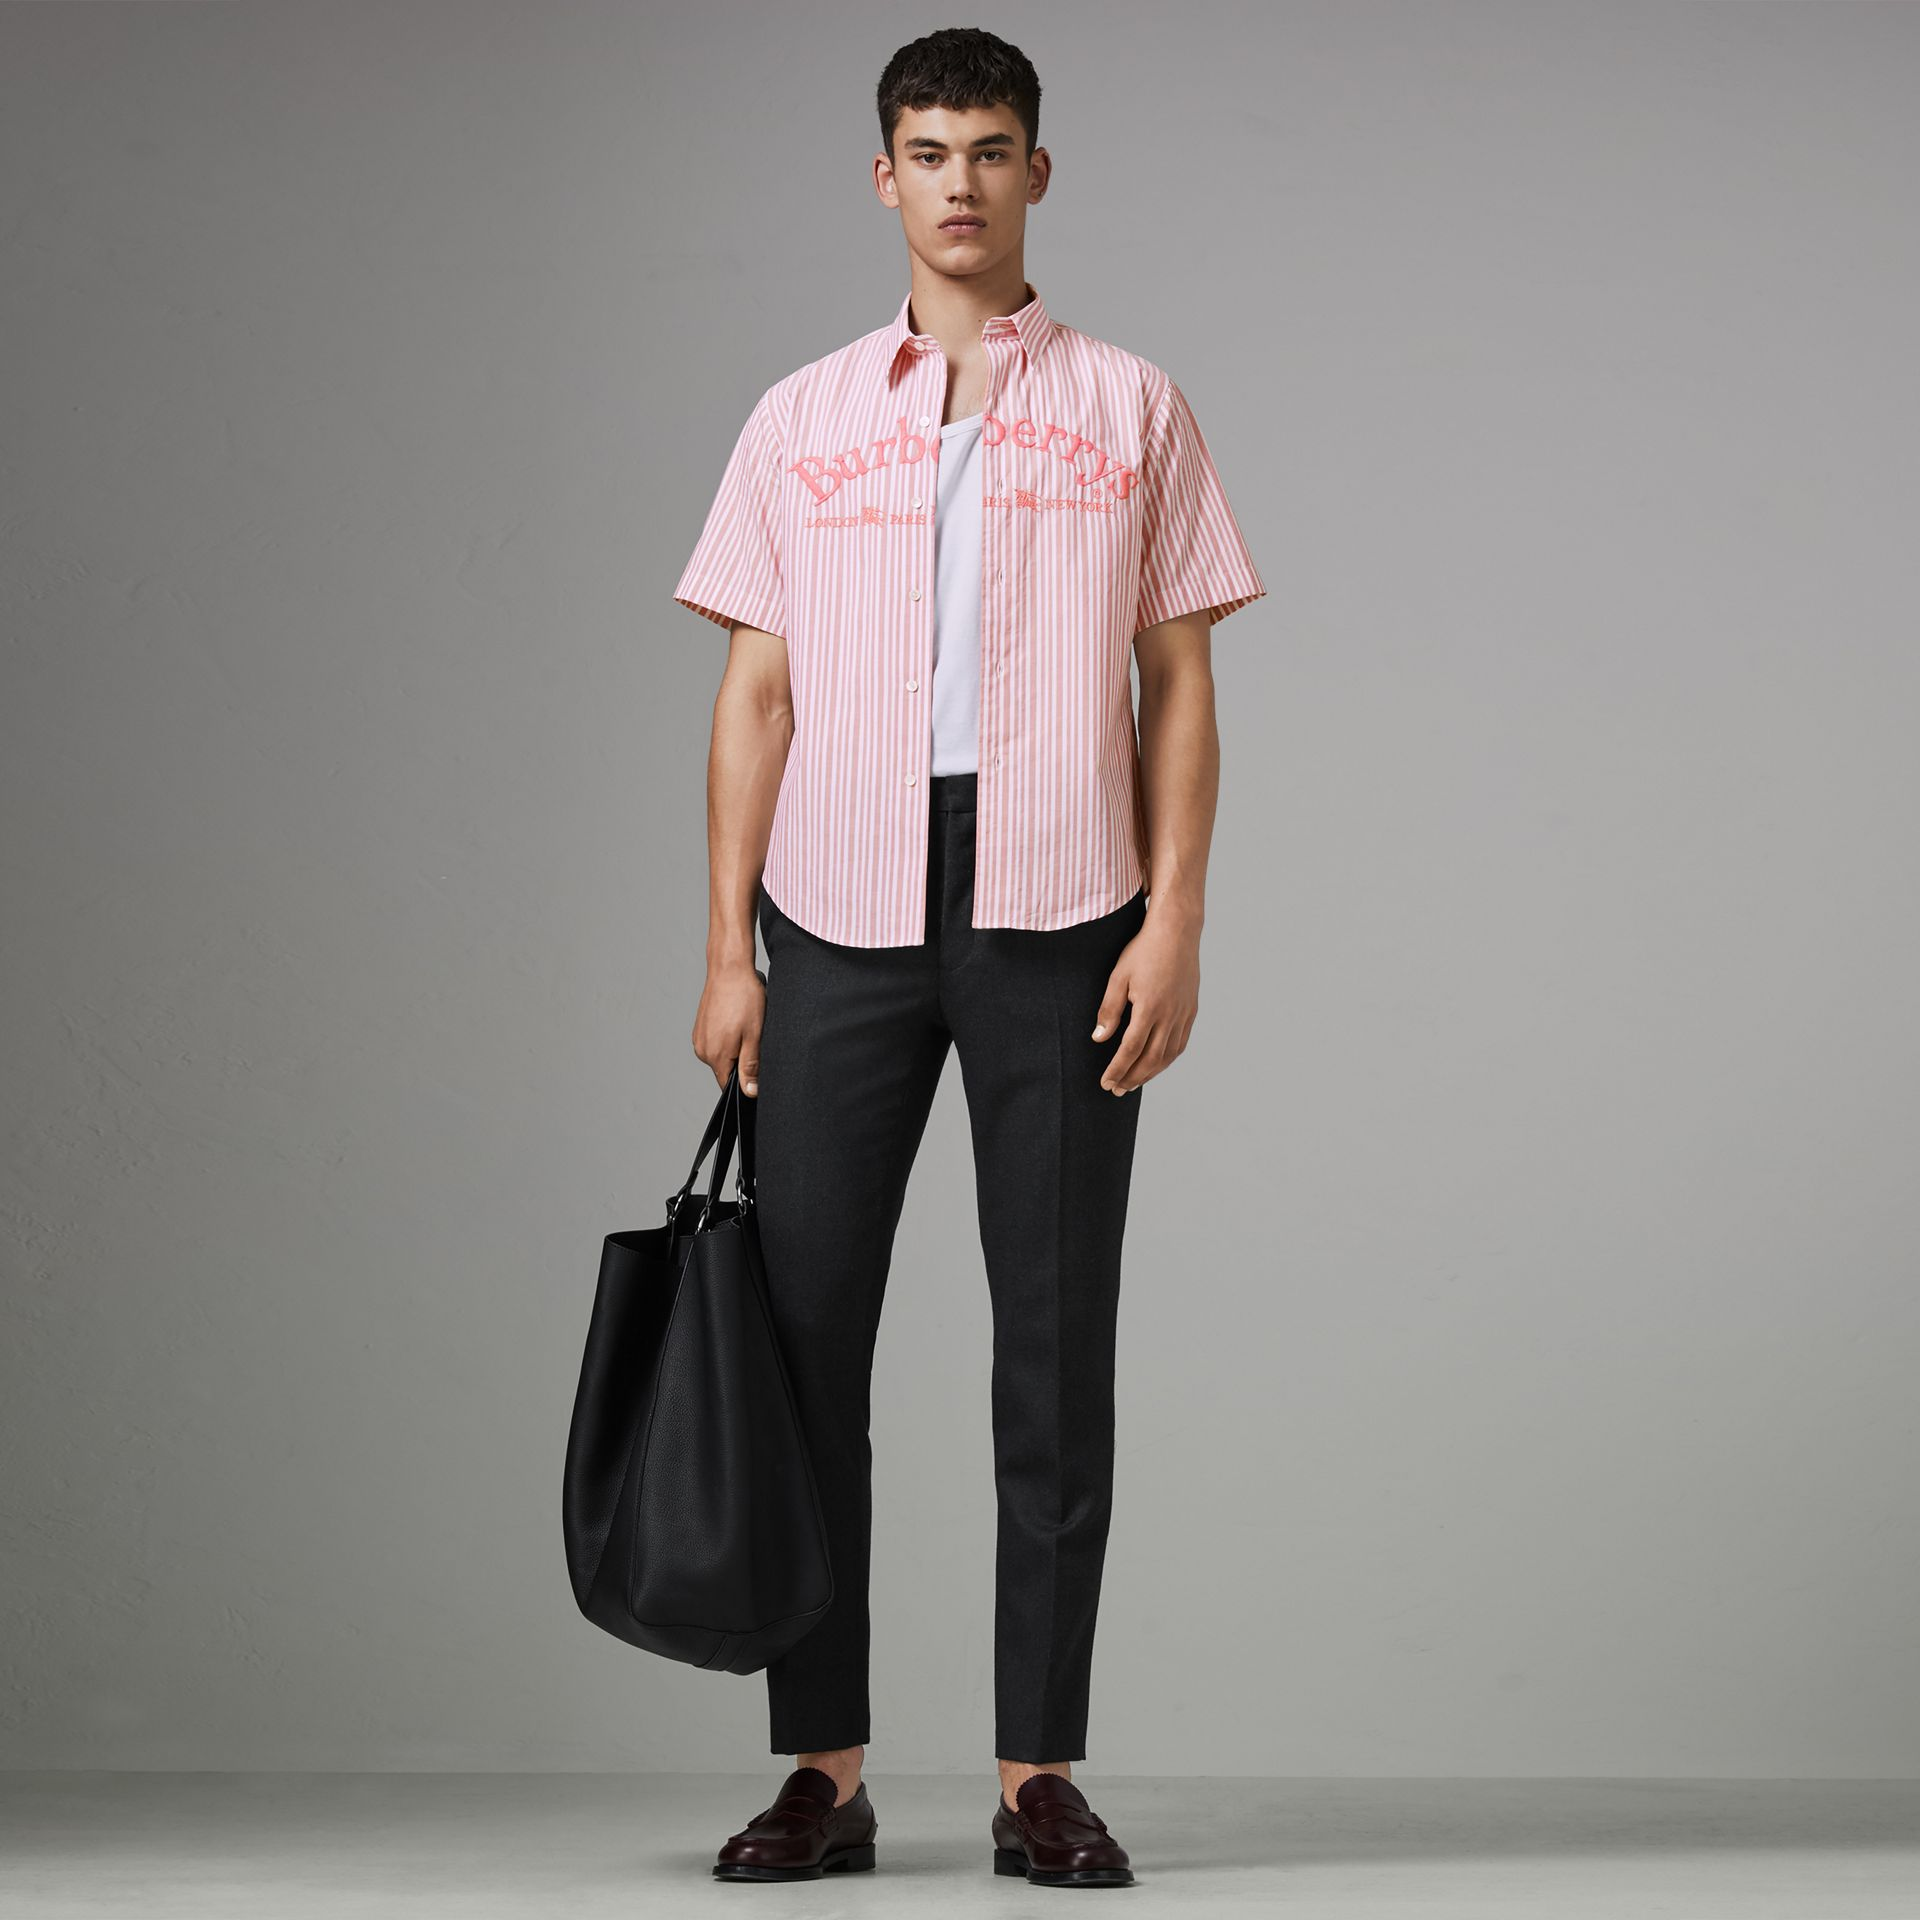 Embroidered Archive Logo Striped Short-sleeve Shirt in Light Pink - Men | Burberry - gallery image 0